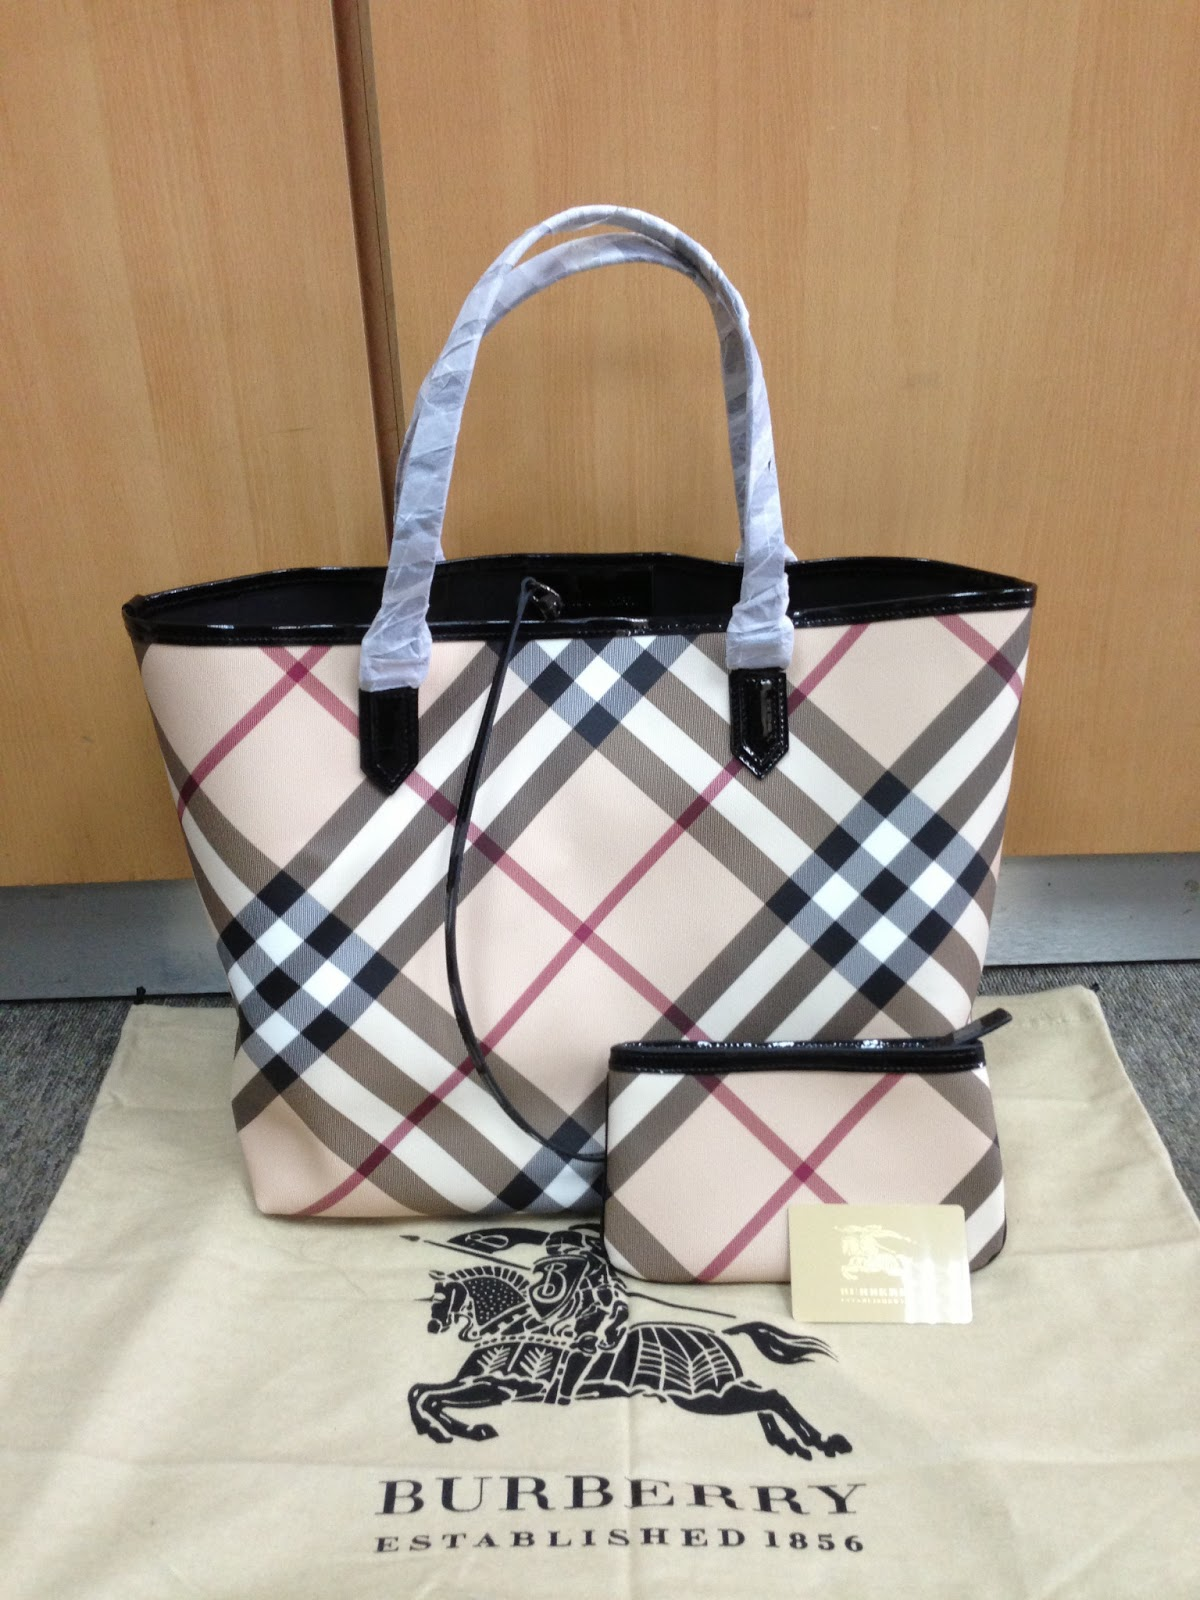 45323a181b96 100% AUTHENTIC BURBERRY MEDIUM NOVA CHECK TOTE BAG WITH ZIP POUCH